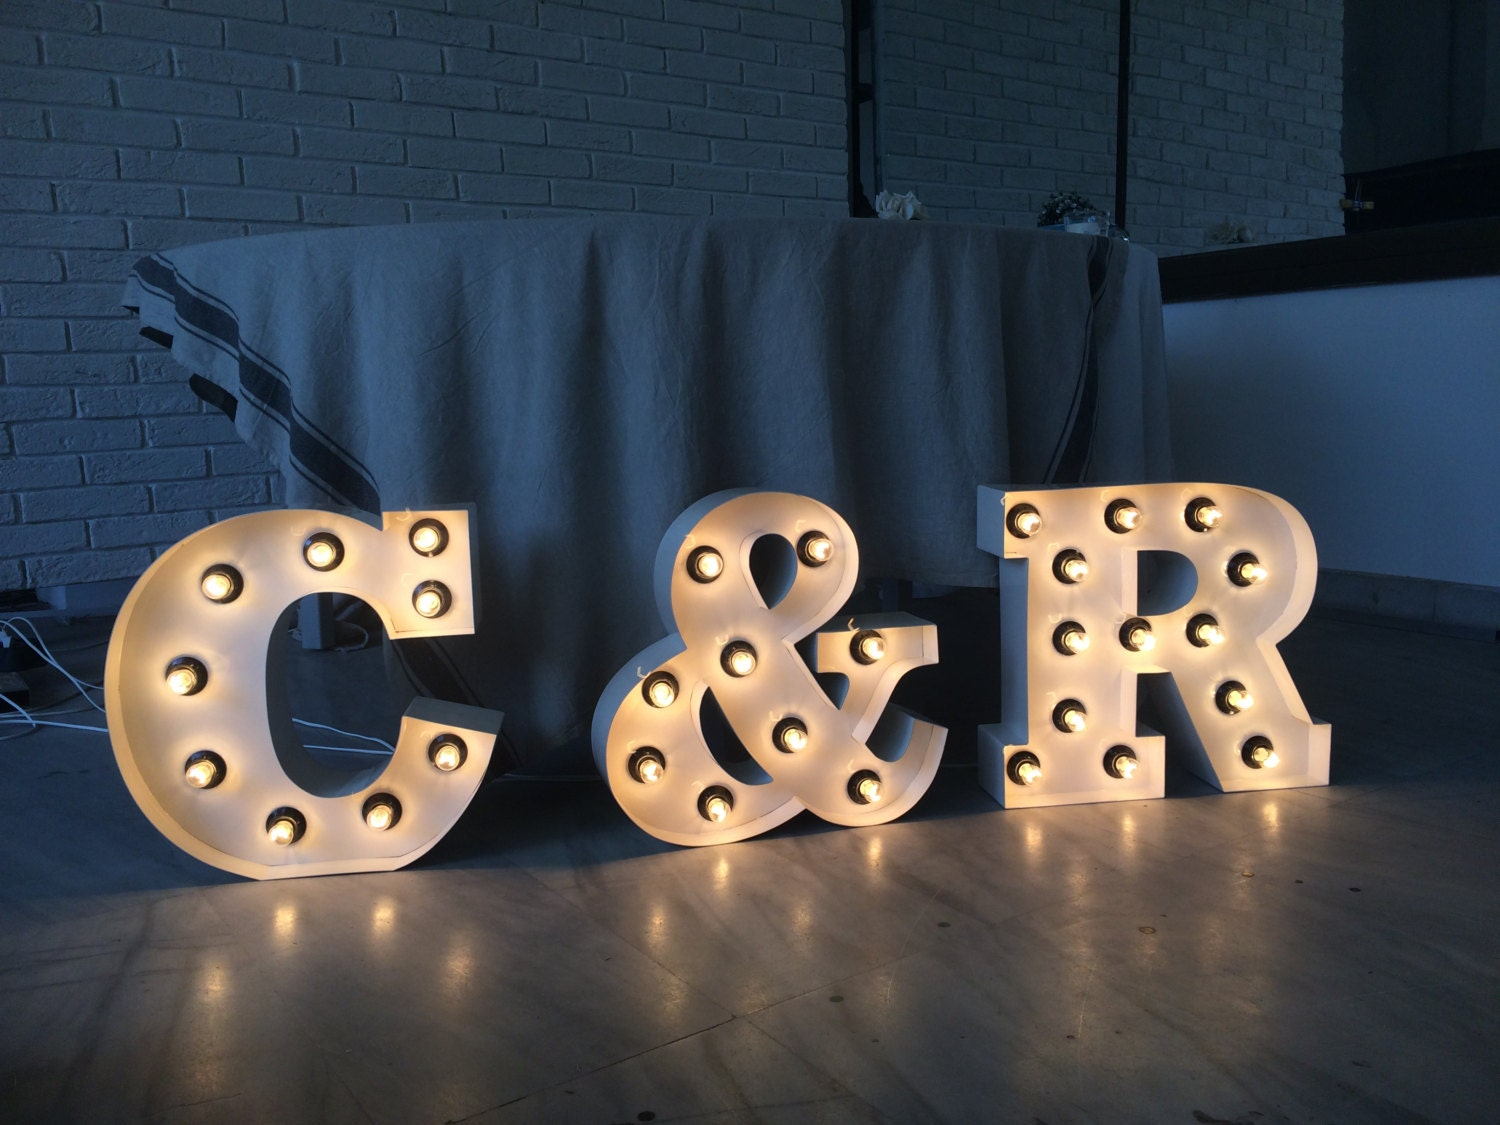 Metal Initials Extraordinary Light Up Numberslight Up Letters Initials Large Marquee Decorating Inspiration